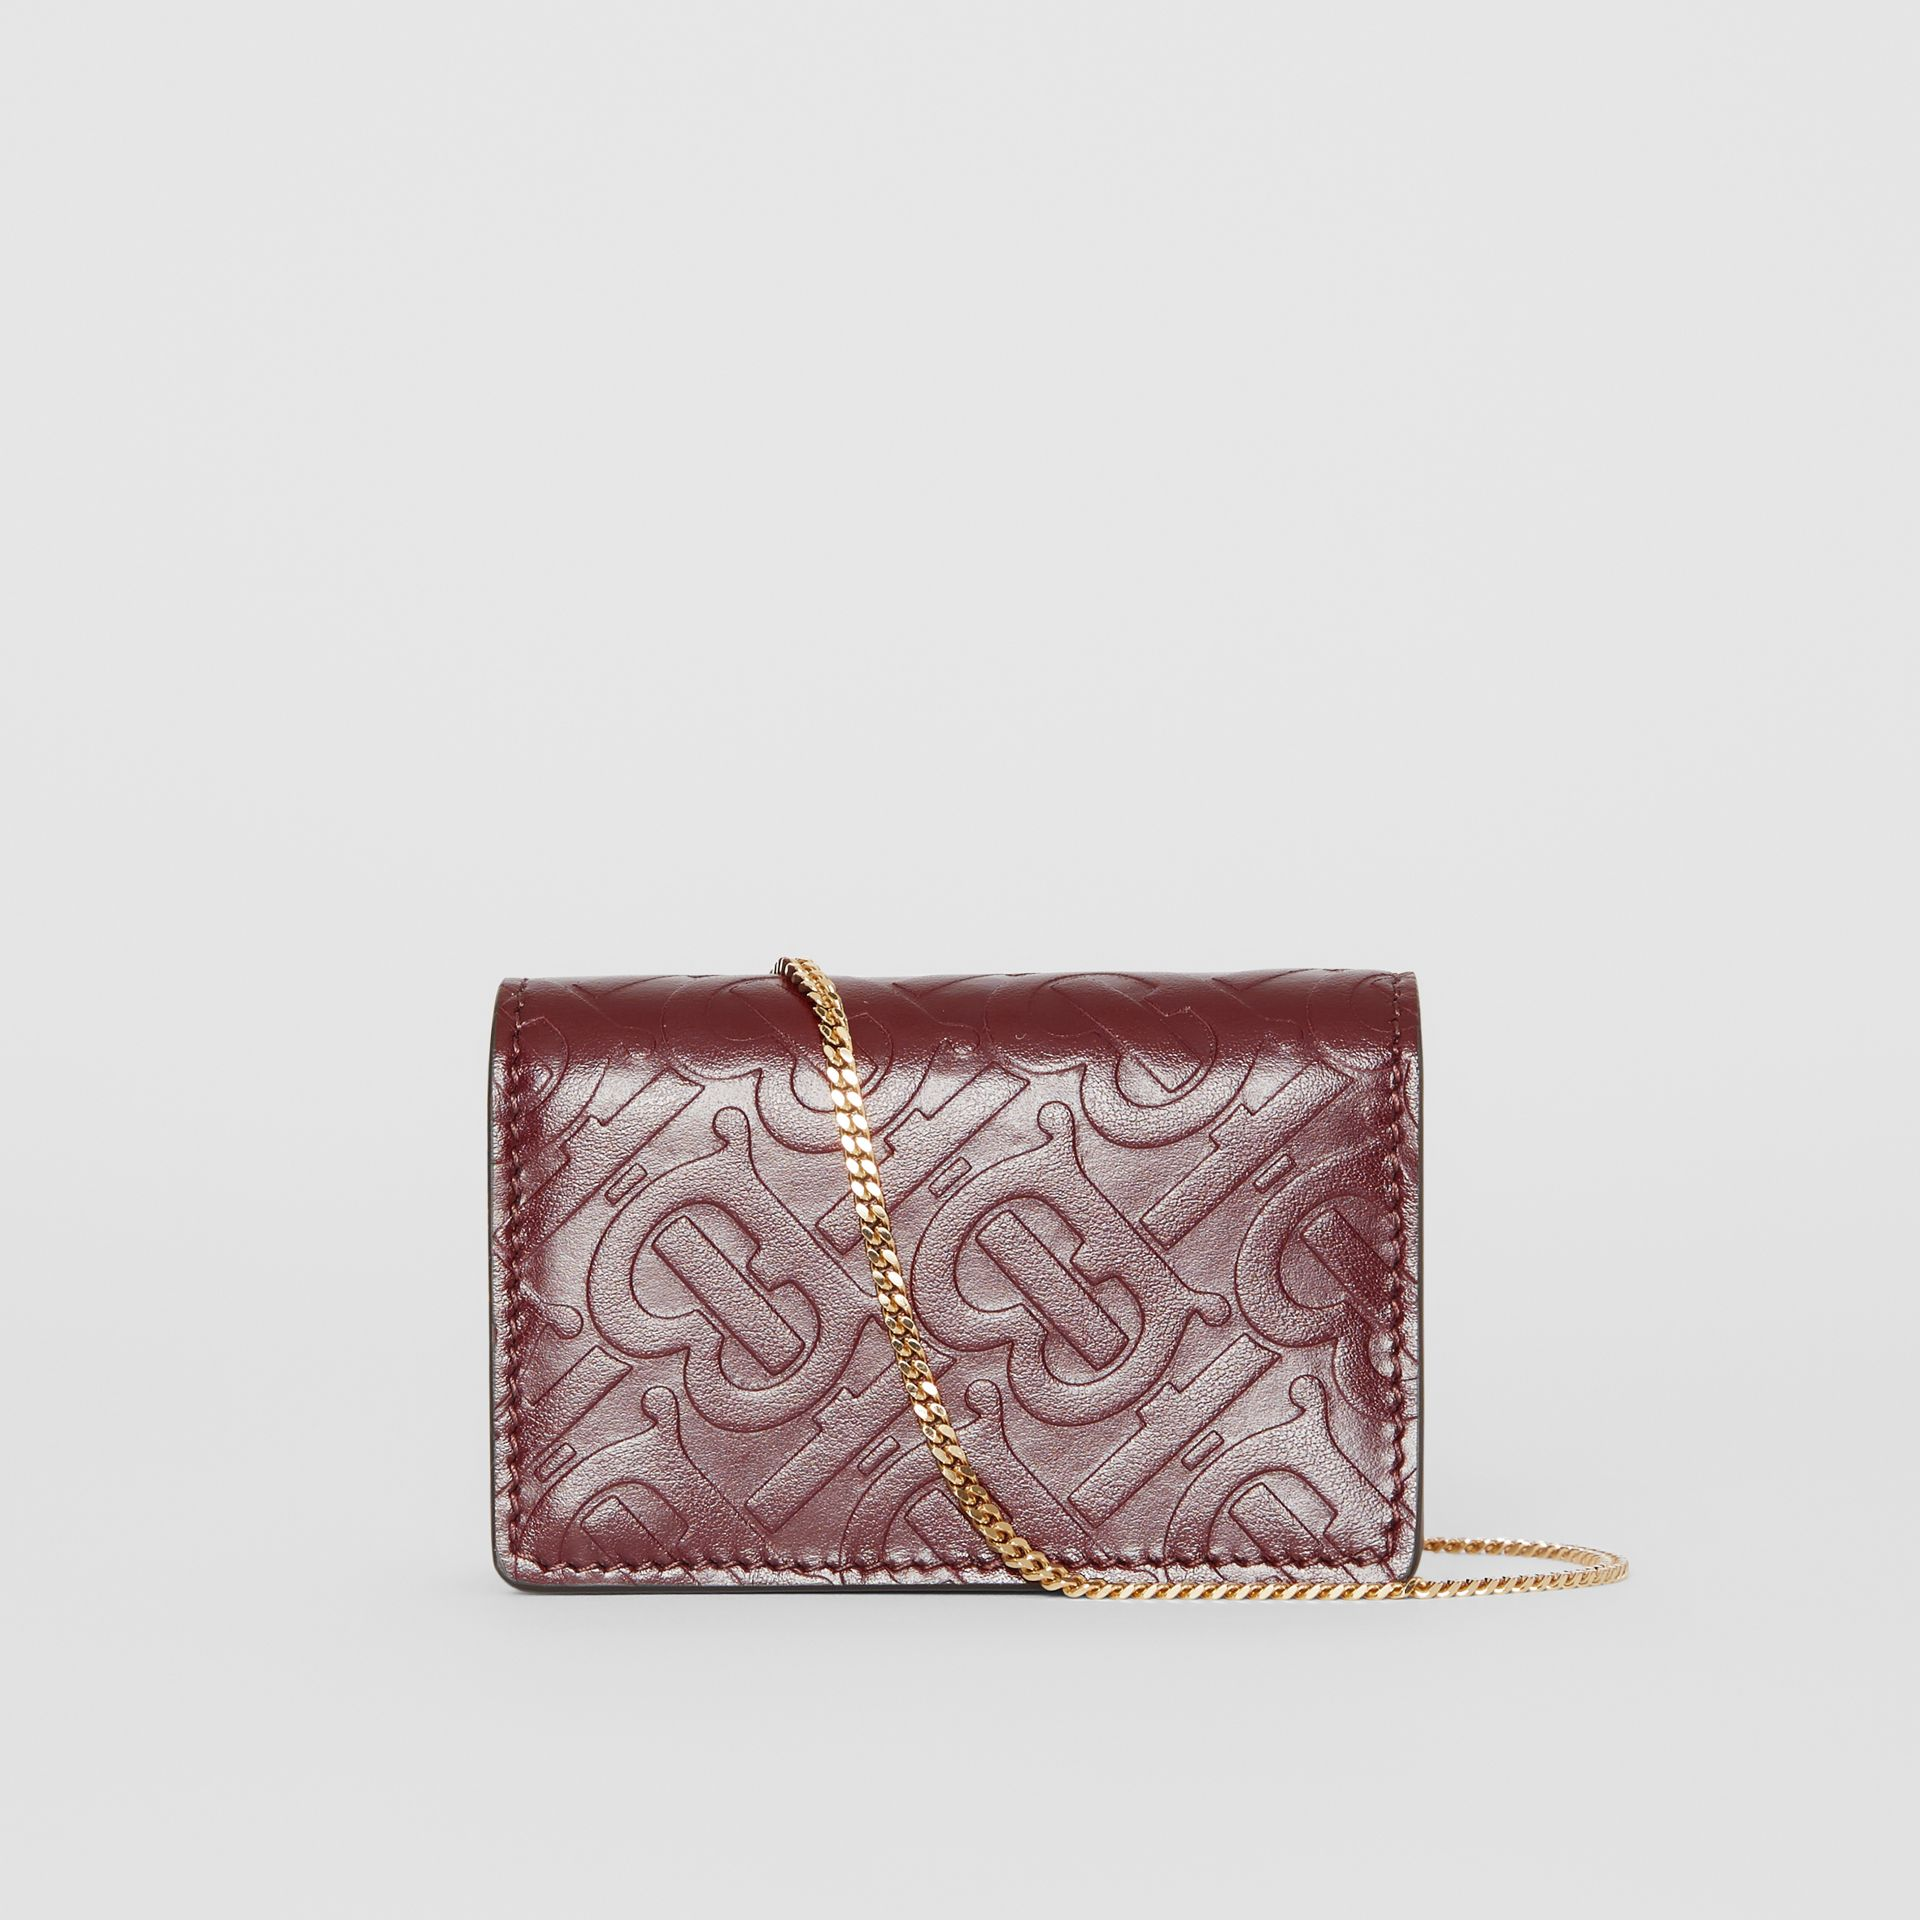 Monogram Leather Card Case with Detachable Strap in Oxblood | Burberry United Kingdom - gallery image 7